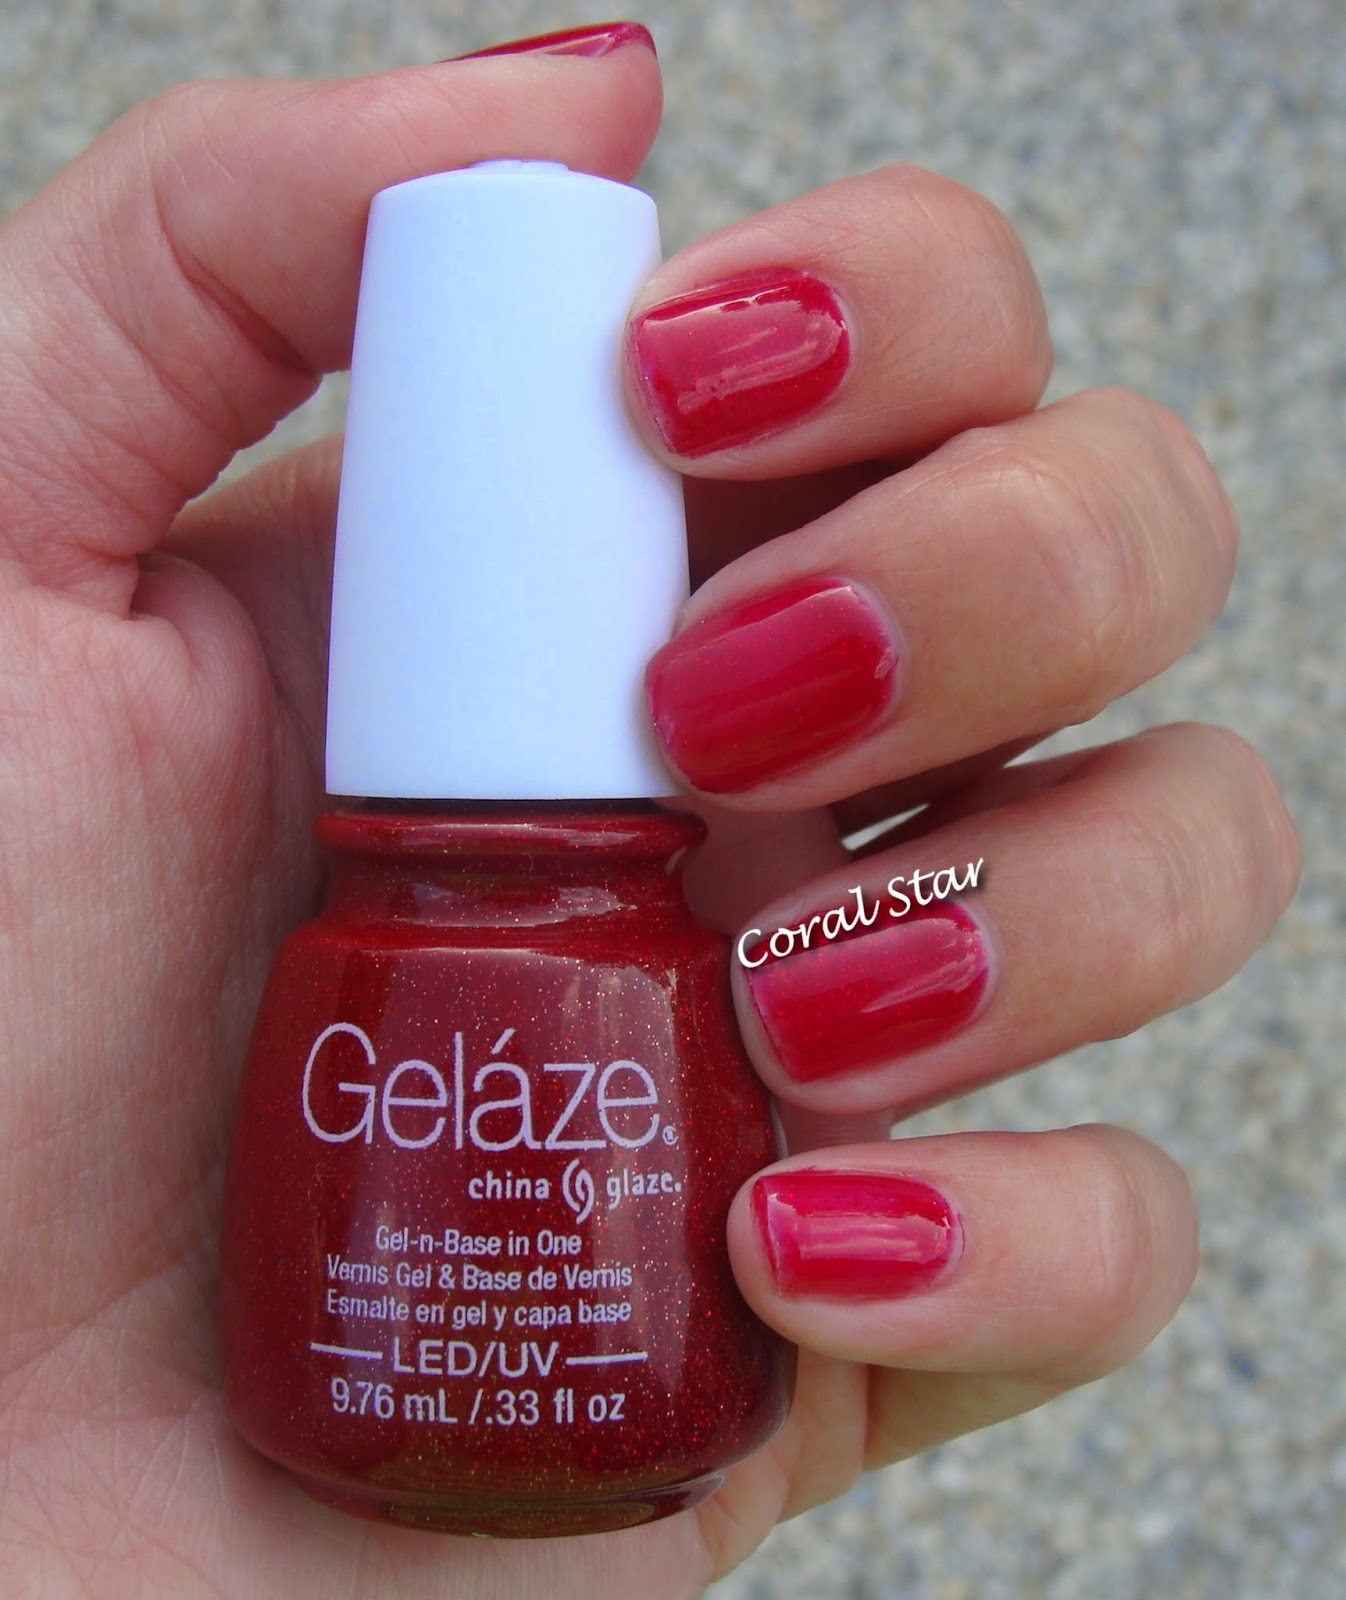 Coral Star: Nails of the Week: Ruby Pumps by Gelaze